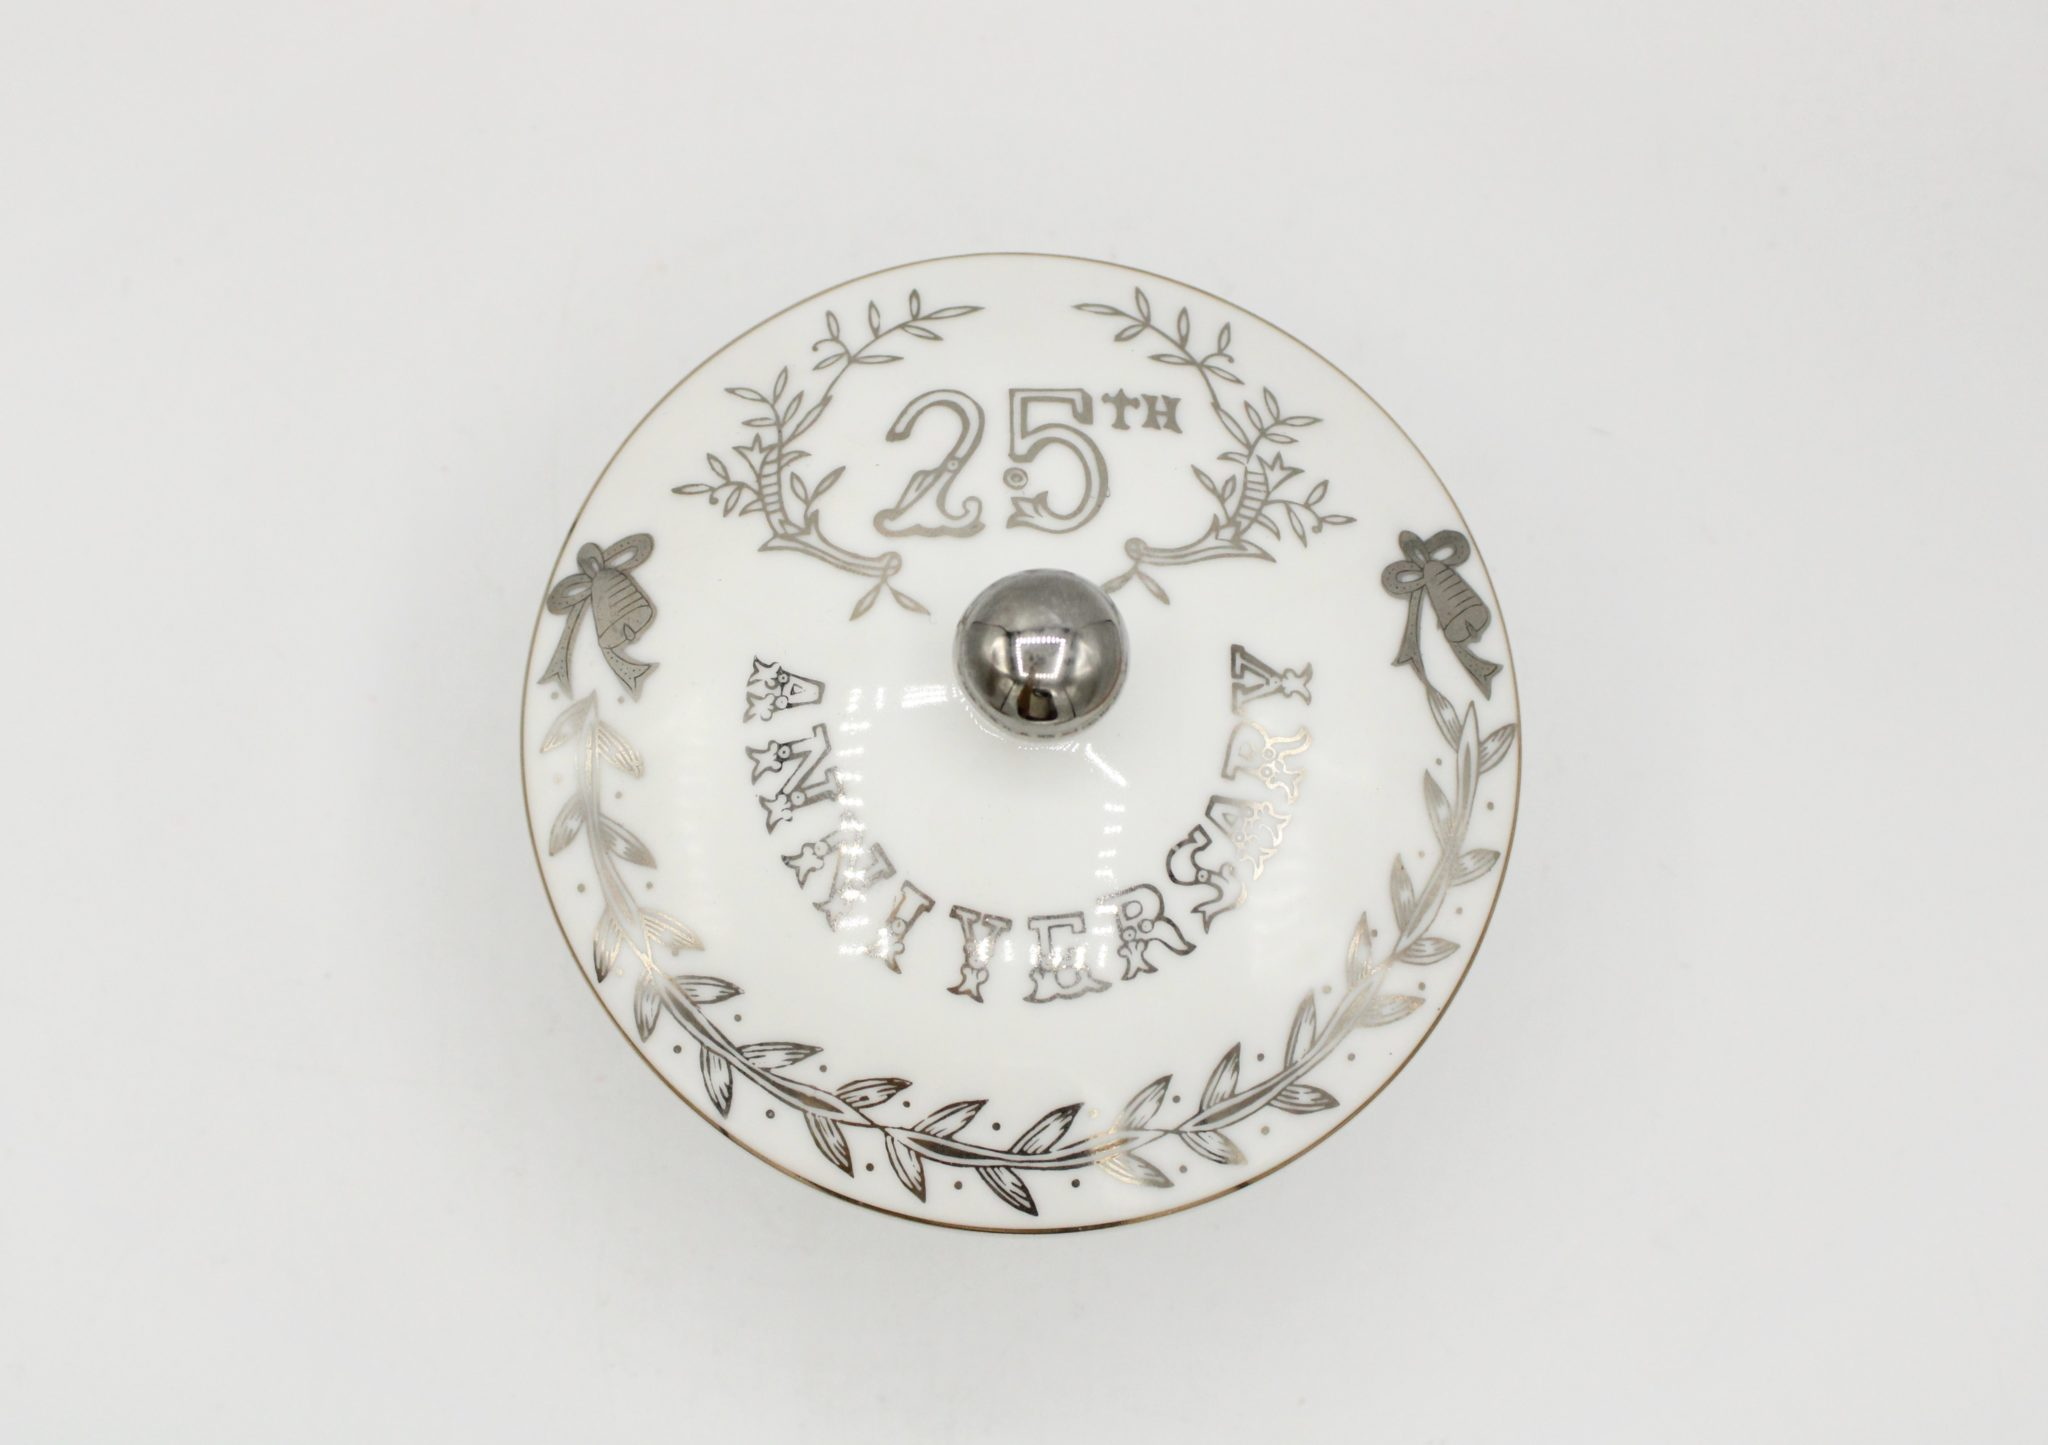 Vintage 25th Anniversary Dish by Lefton